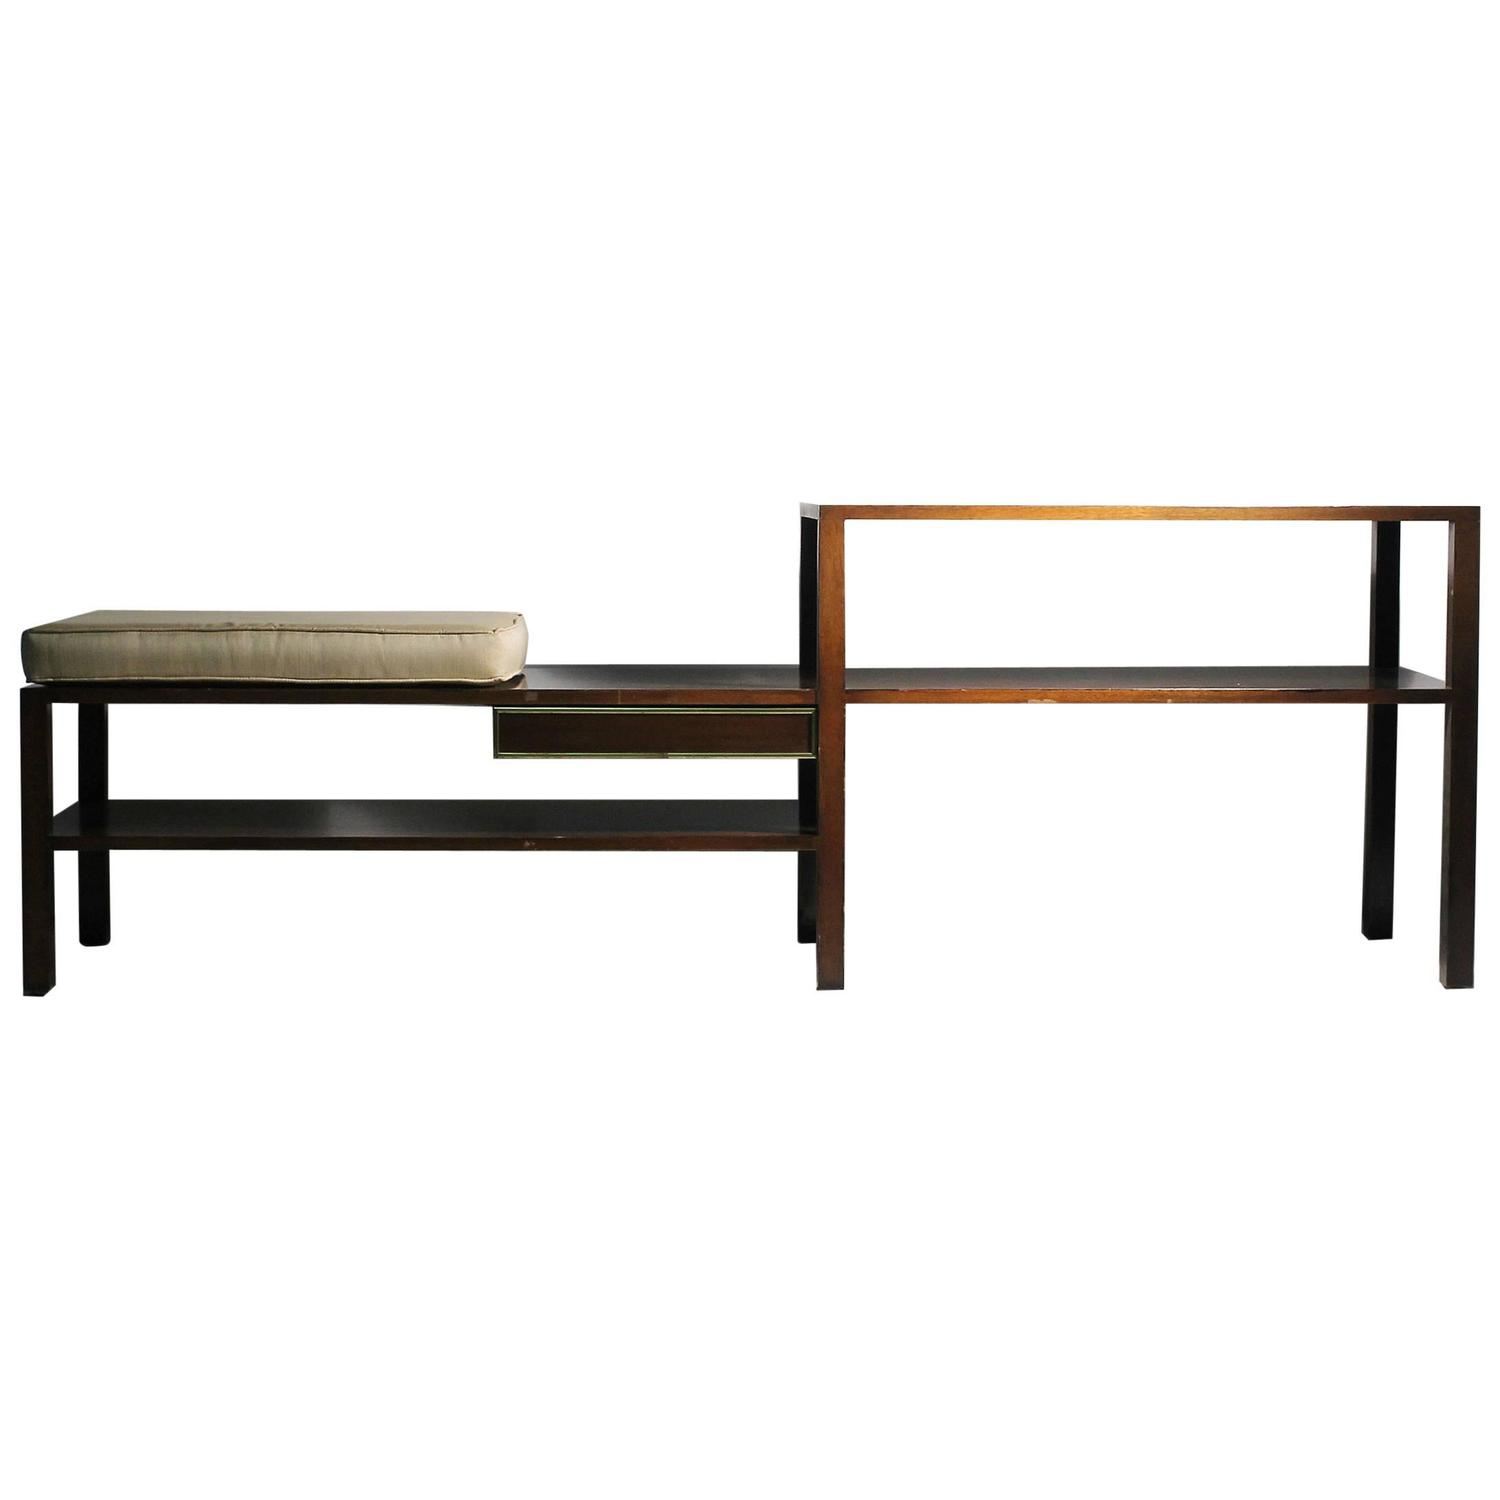 Architectural Harvey Probber Bench Low Etagere Console